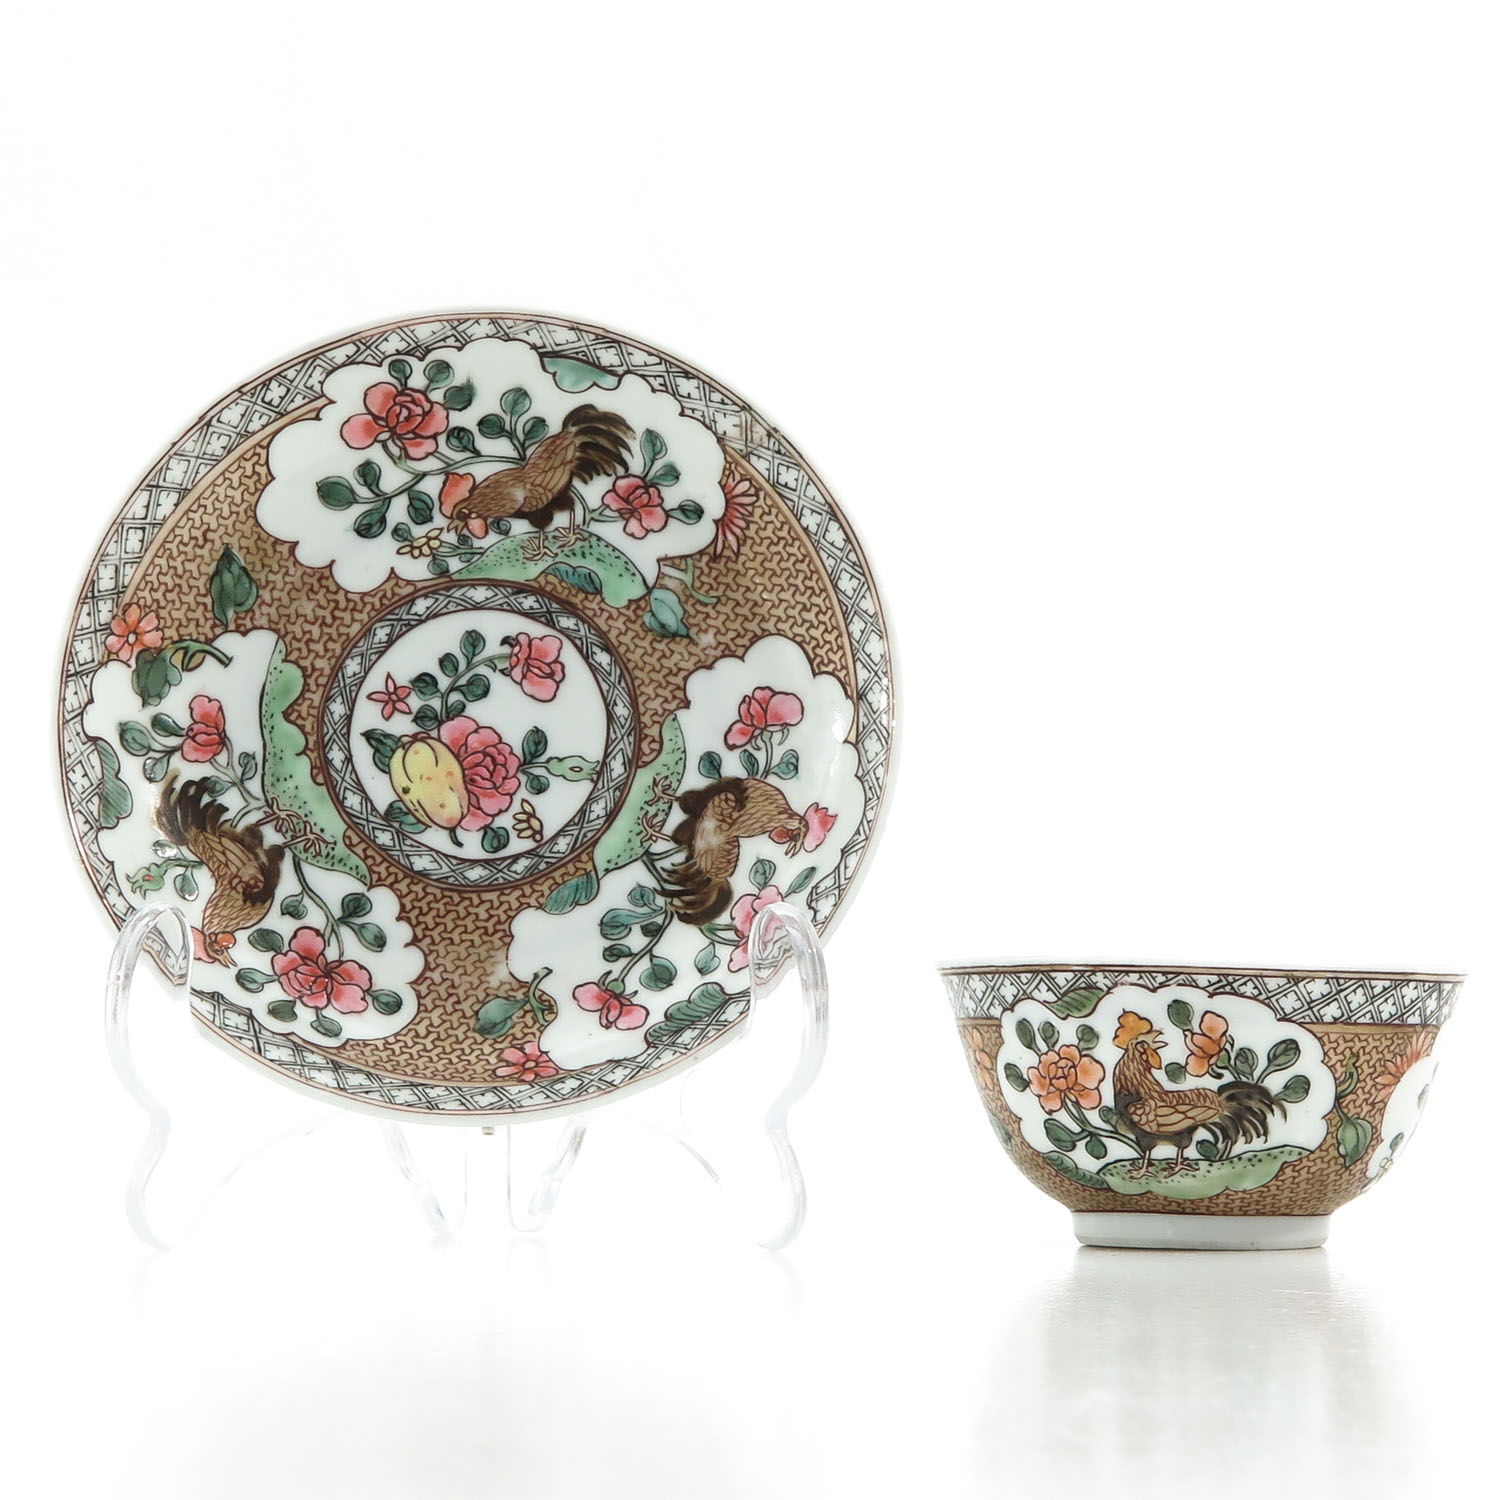 A Rooster Decor Cup and Saucer - Image 4 of 10